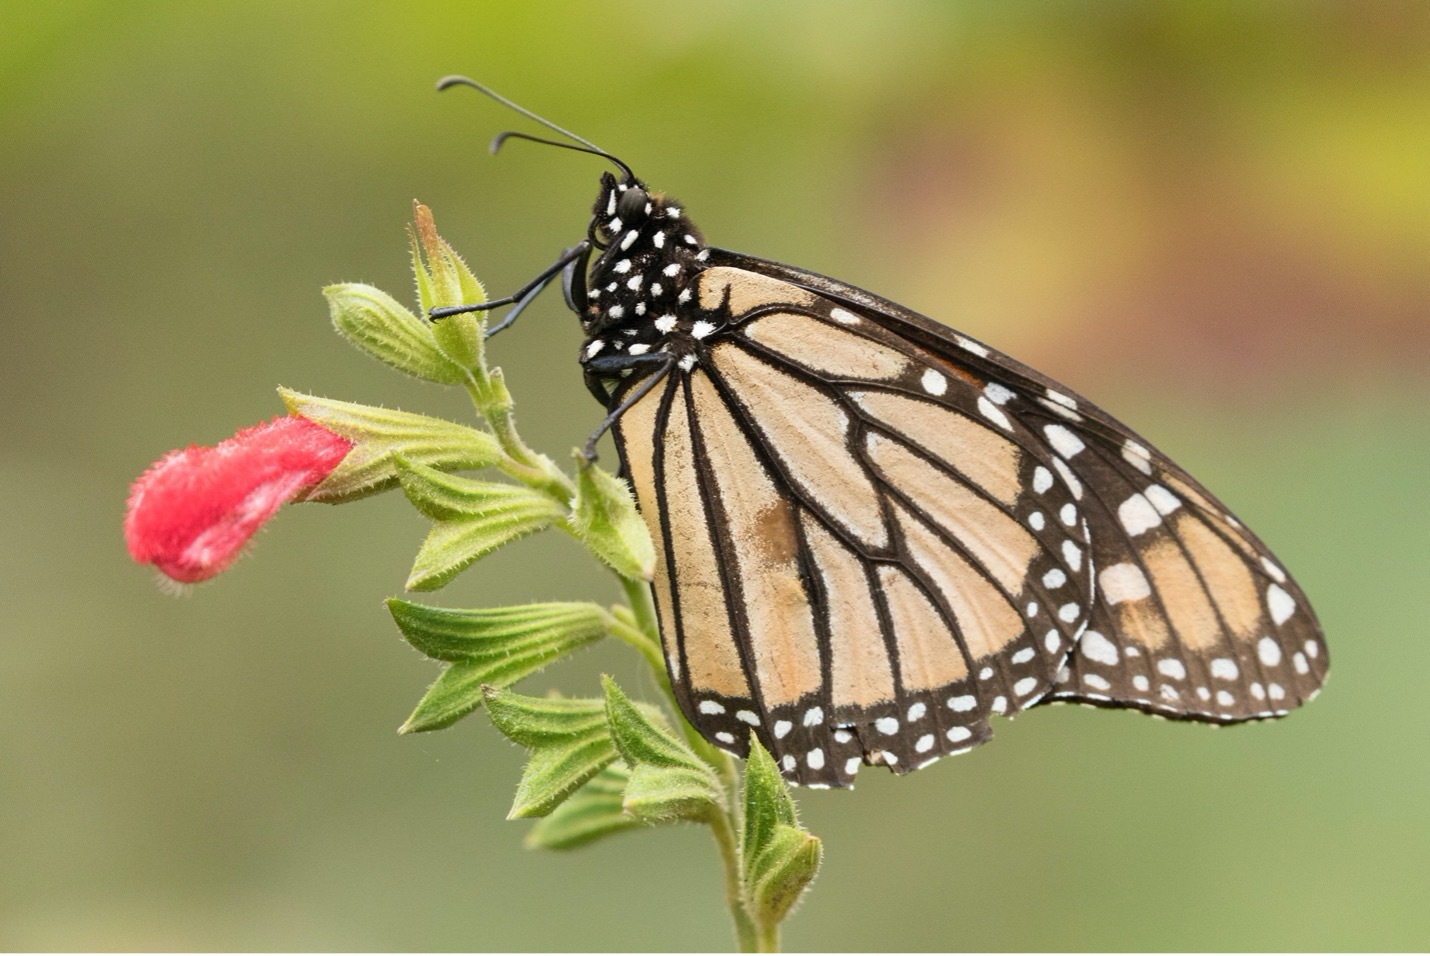 a side photo of a monarch butterfly in macro photography style